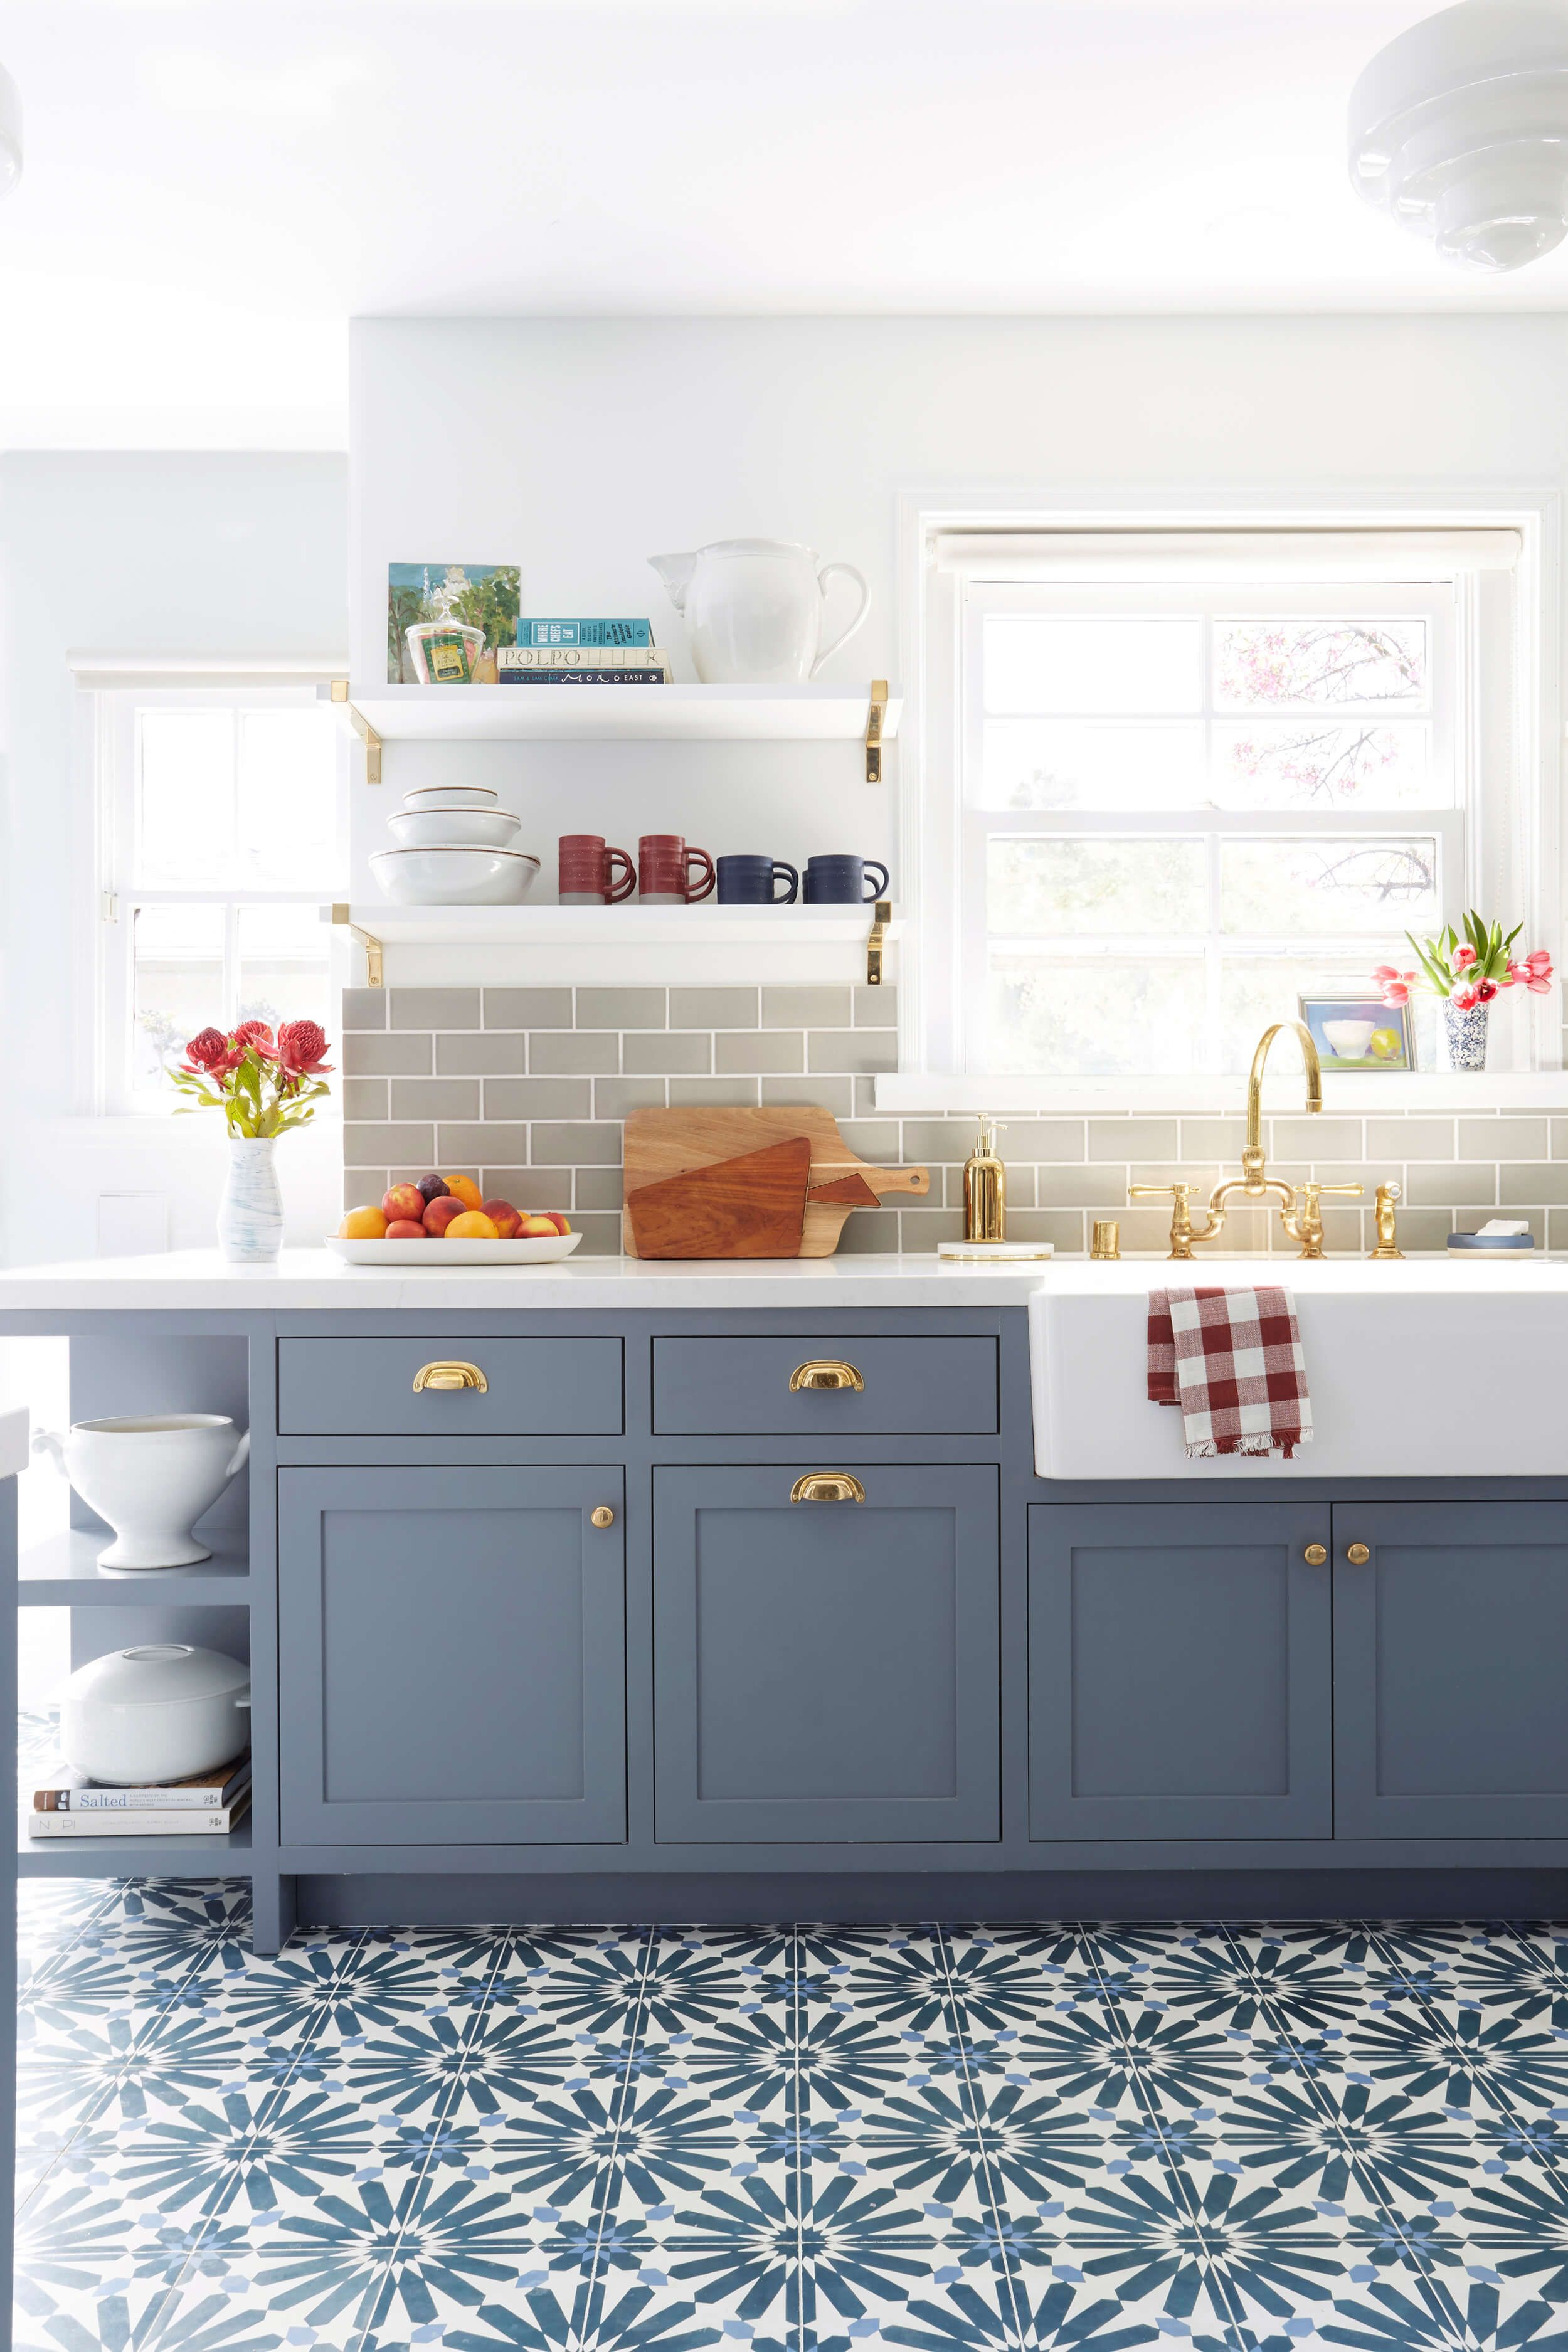 Colors Of Kitchen Cabinets Wall Decorations My Favorite Non Neutral Paint This Color Wolf Gray By Benjamin Moore Is The Blue Dreams